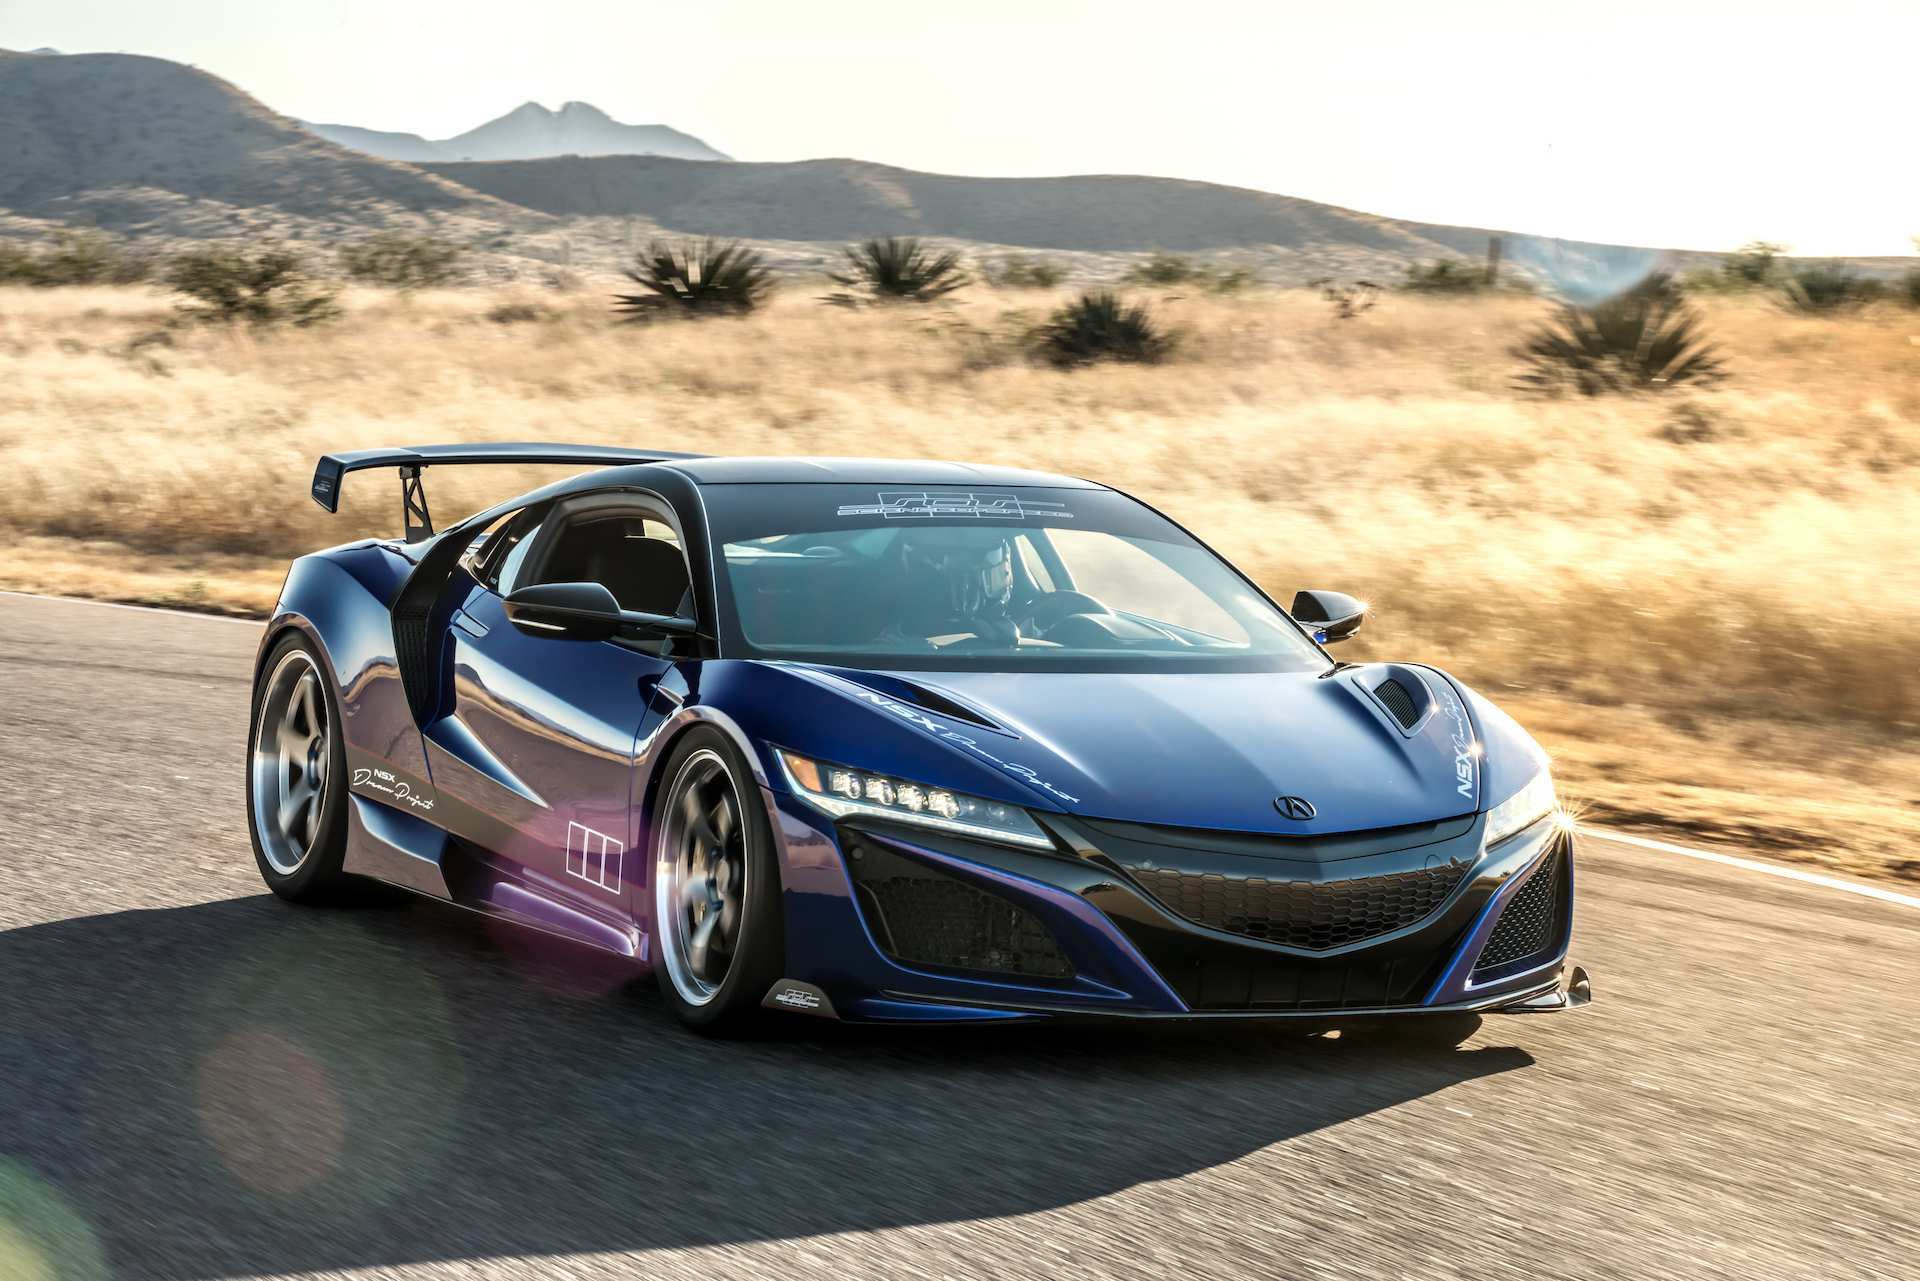 90 New 2020 Acura NSX New Review by 2020 Acura NSX